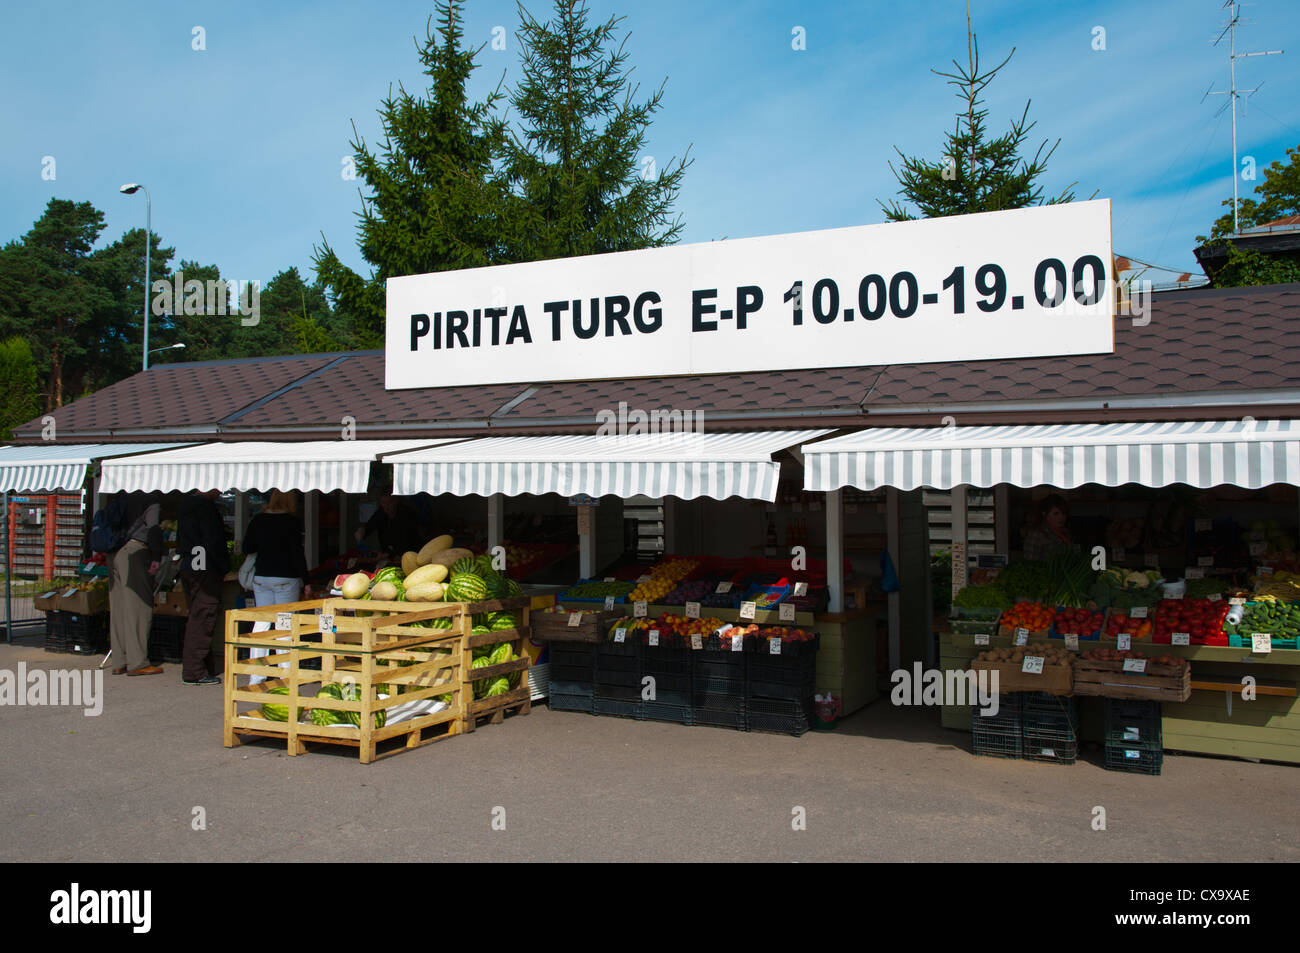 Market stalls selling fresh produce Pirita district Tallinn Estonia Europe Stock Photo